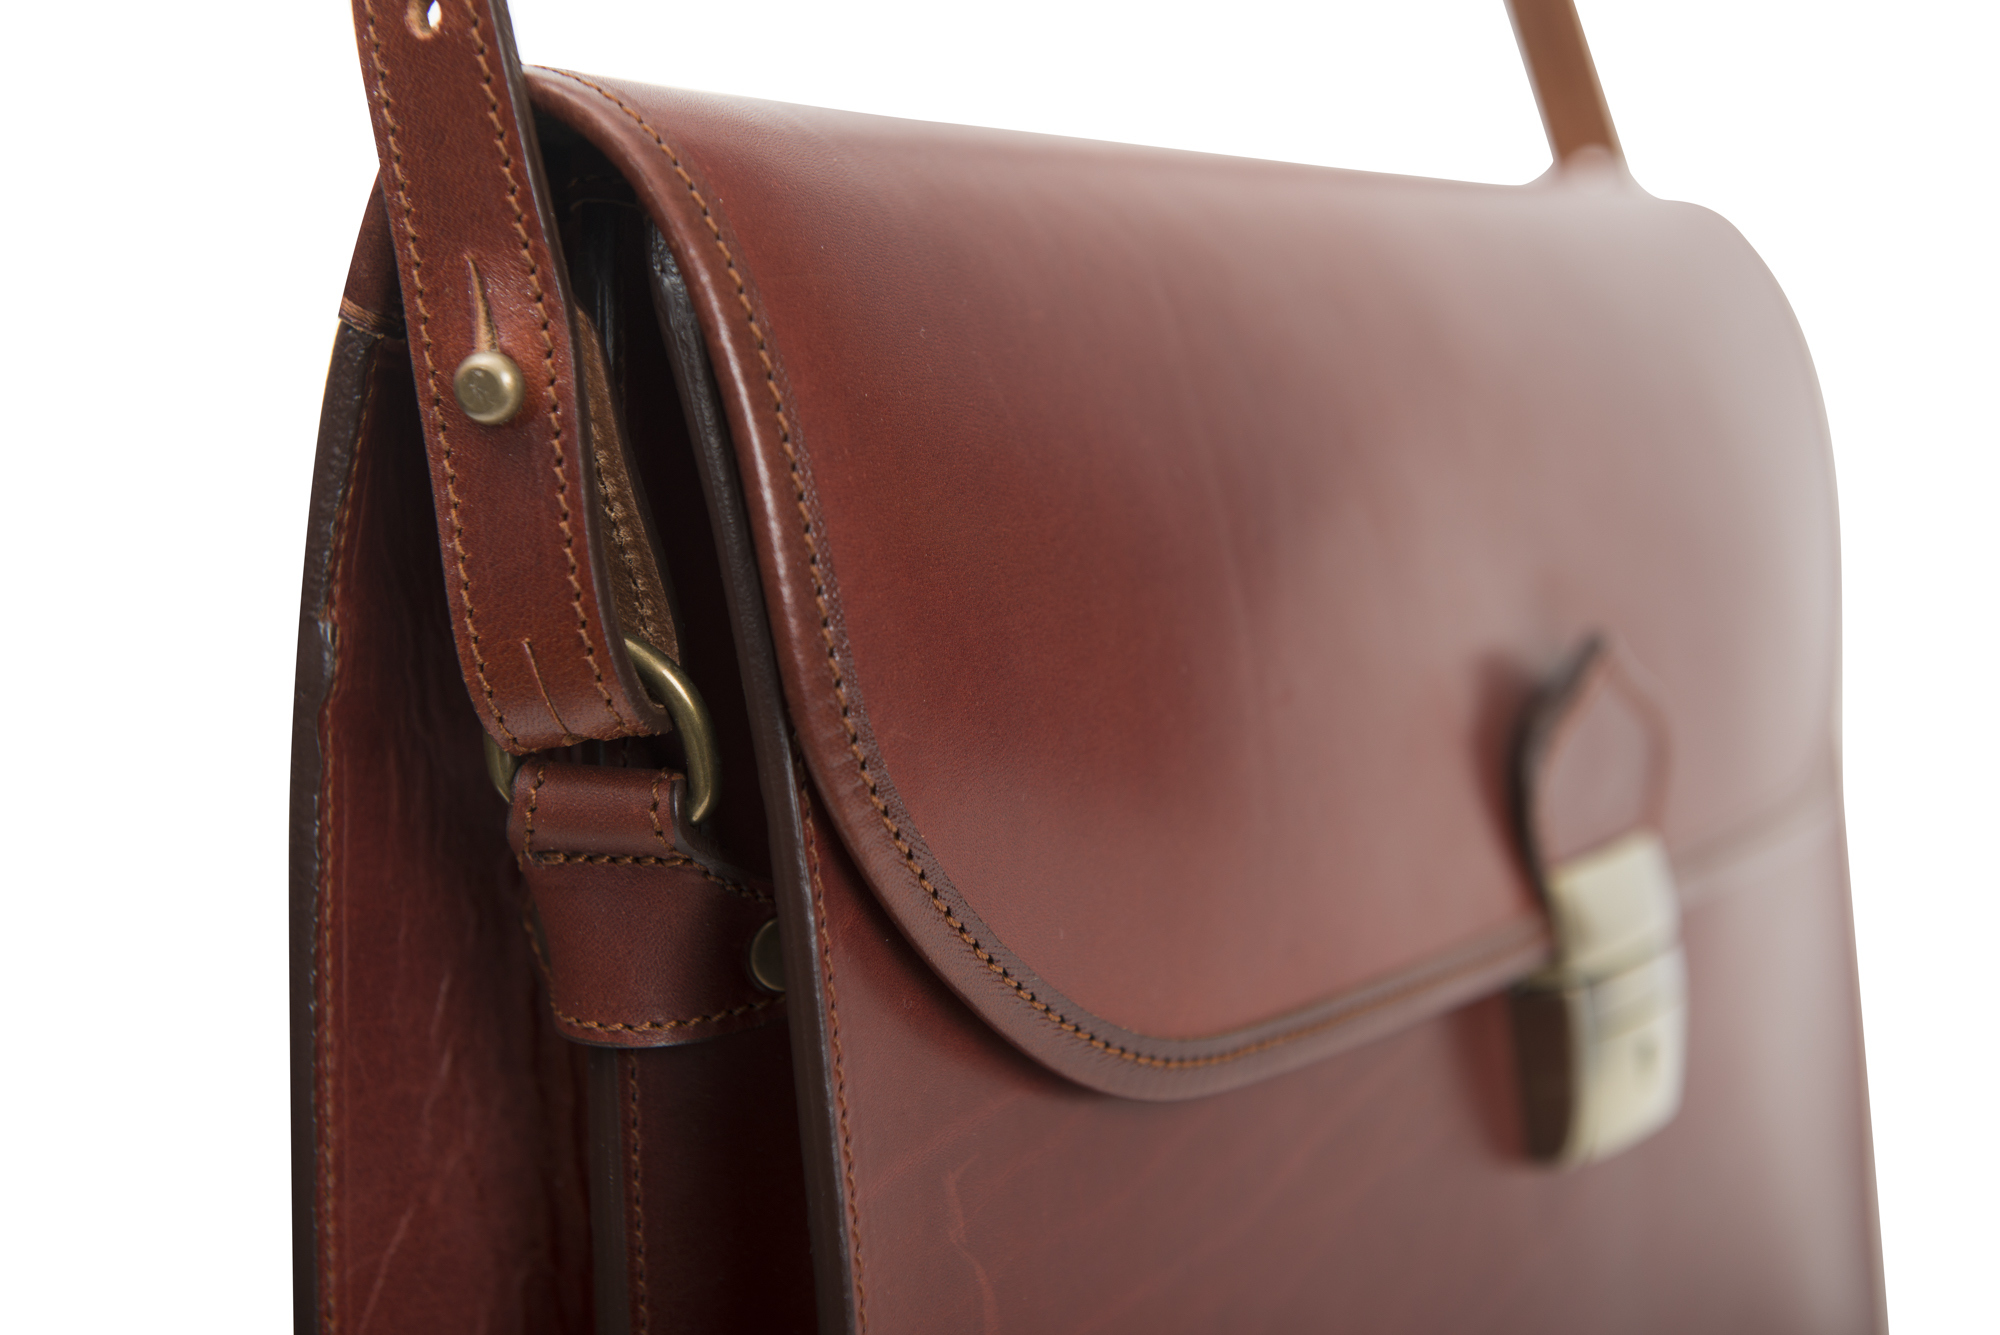 Porta folios 2 fuelles cierre tupi. Código: 13595., Briefcase leather. Guarnicioneria Lopez. Sevil